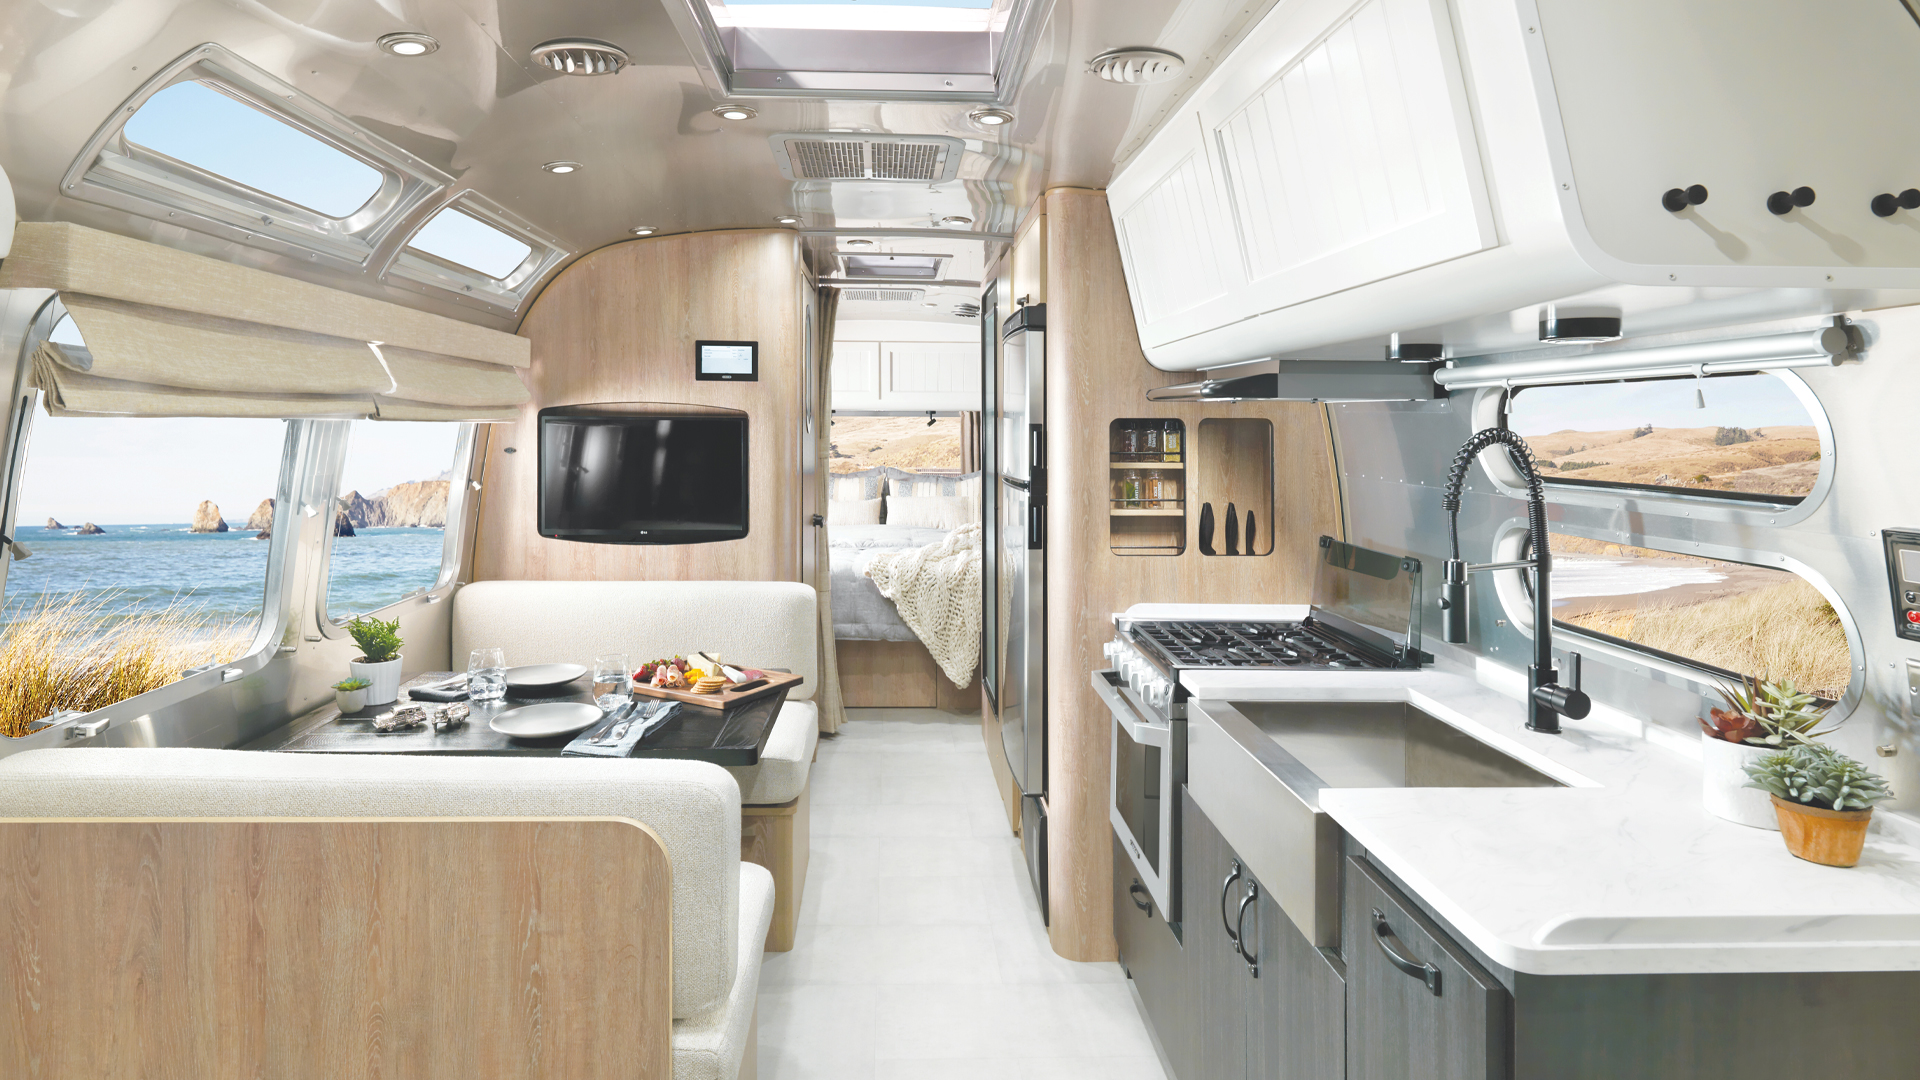 Airstream Pottery Barn Travel Trailer Interior Front to Back